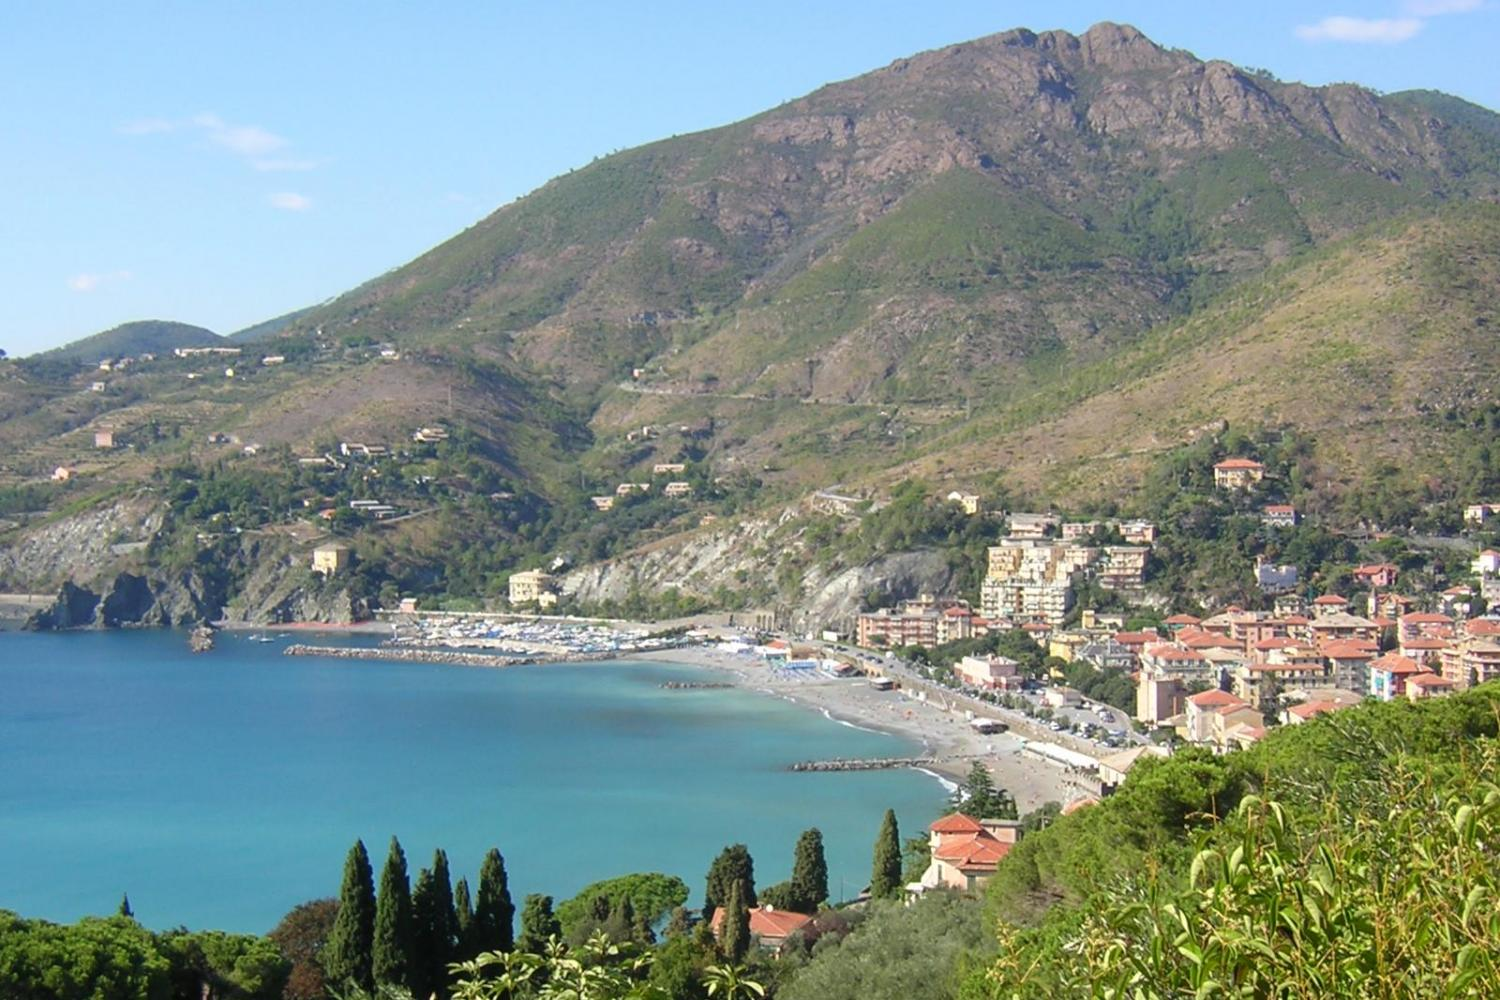 Beautiful view of the beach in Levanto!